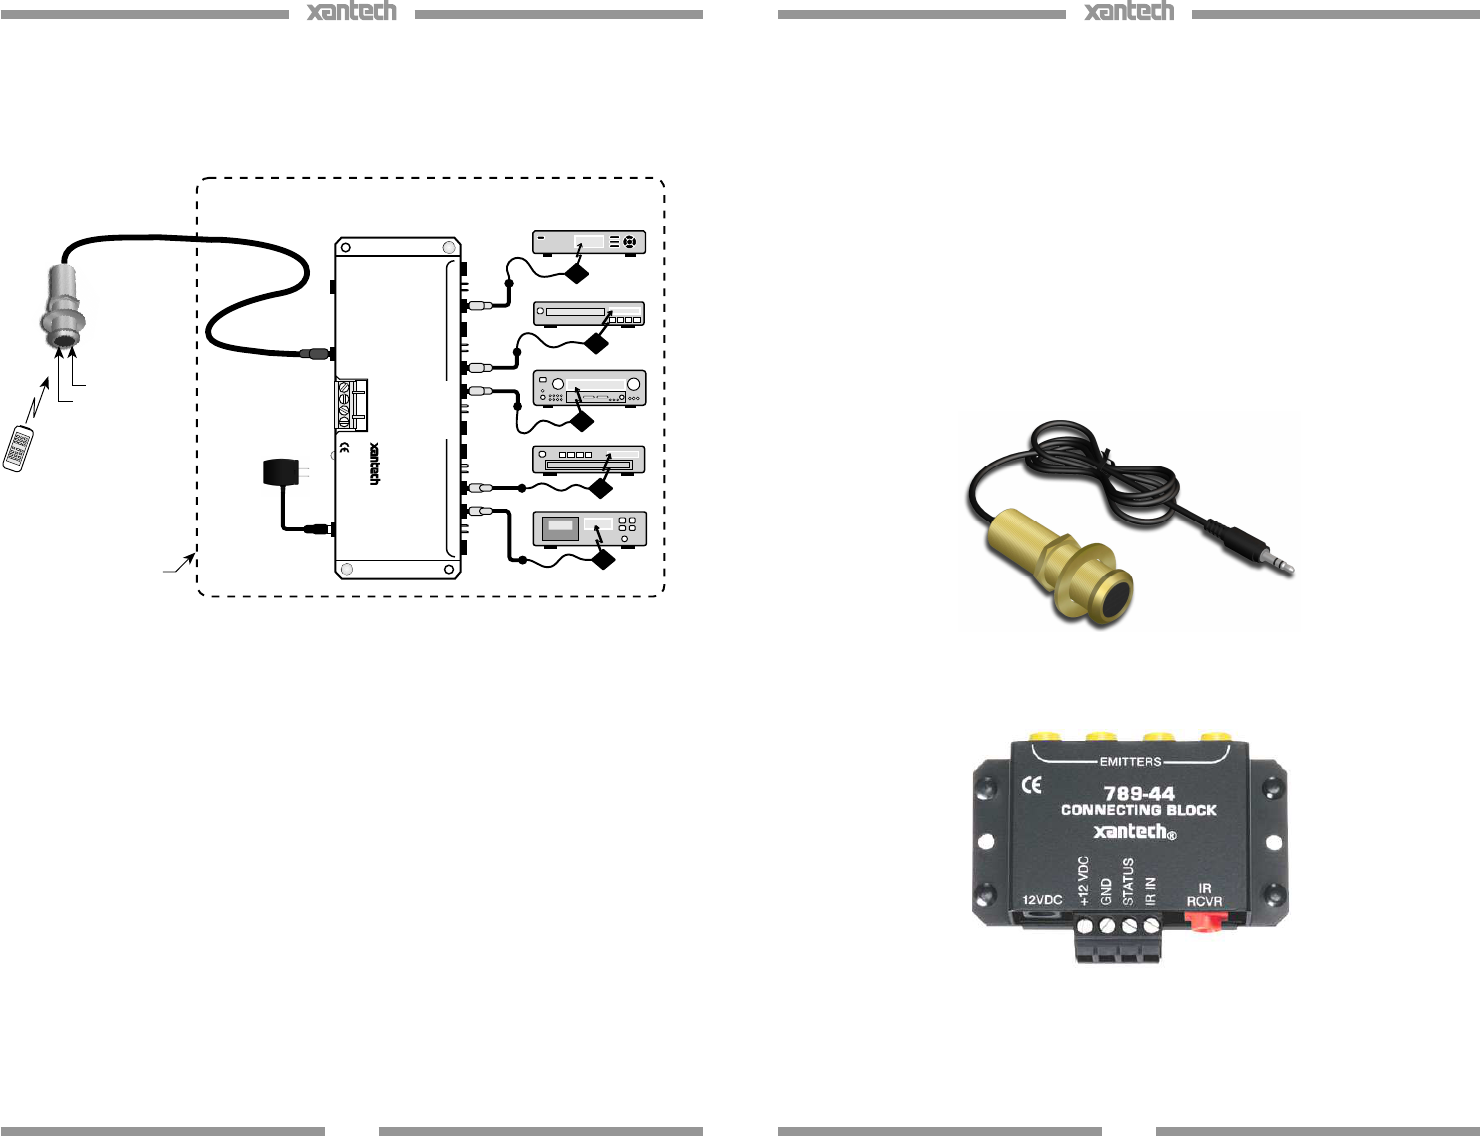 Xantech Ir Receiver Wiring Diagram | Wiring Diagram on